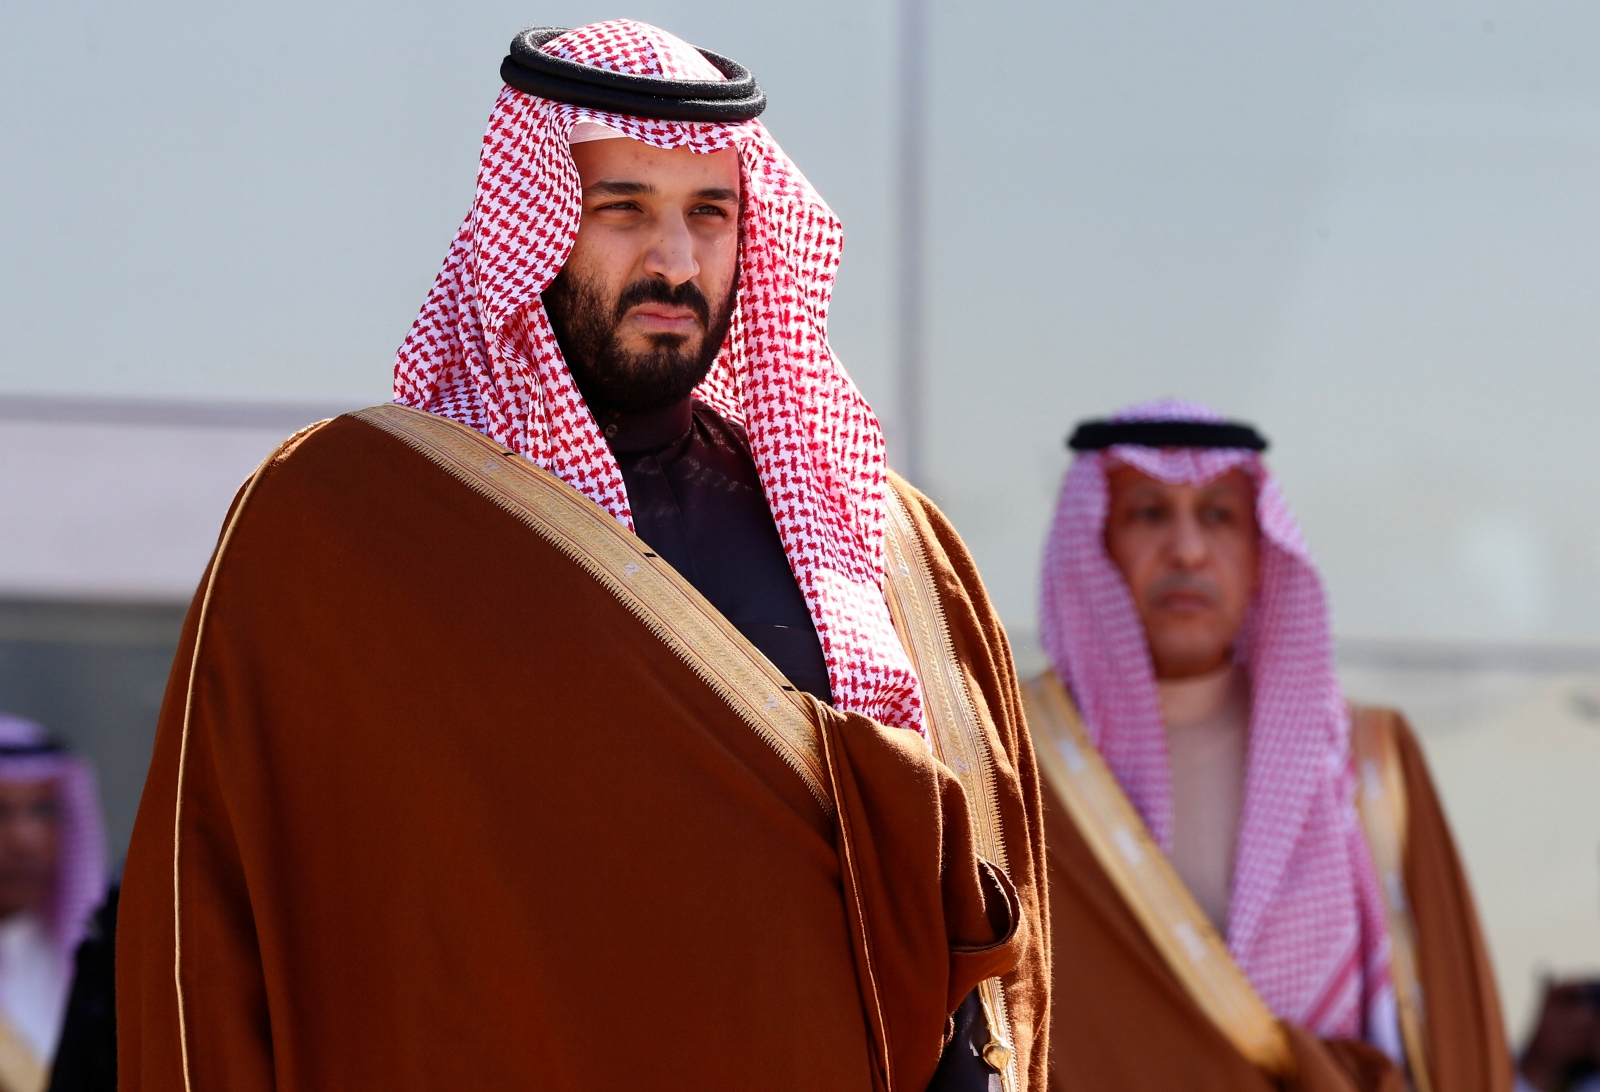 Deputy crown prince of Saudi Arabia